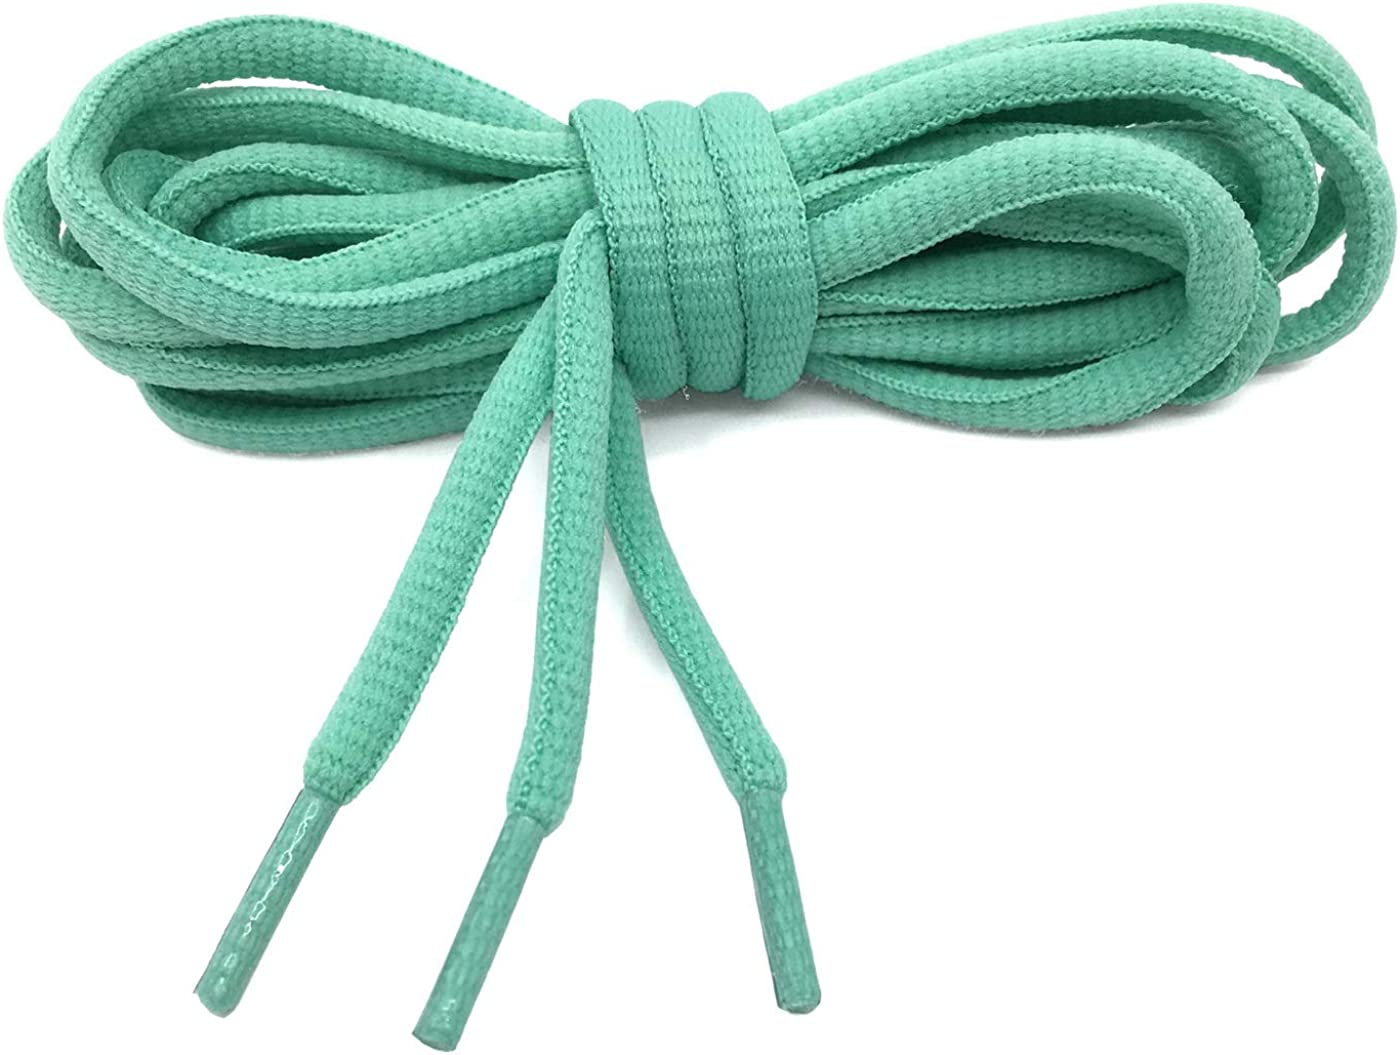 Some reservation YFINE 2 Pair Half Round trend rank Shoe S Athletic for Oval Shoelaces Laces